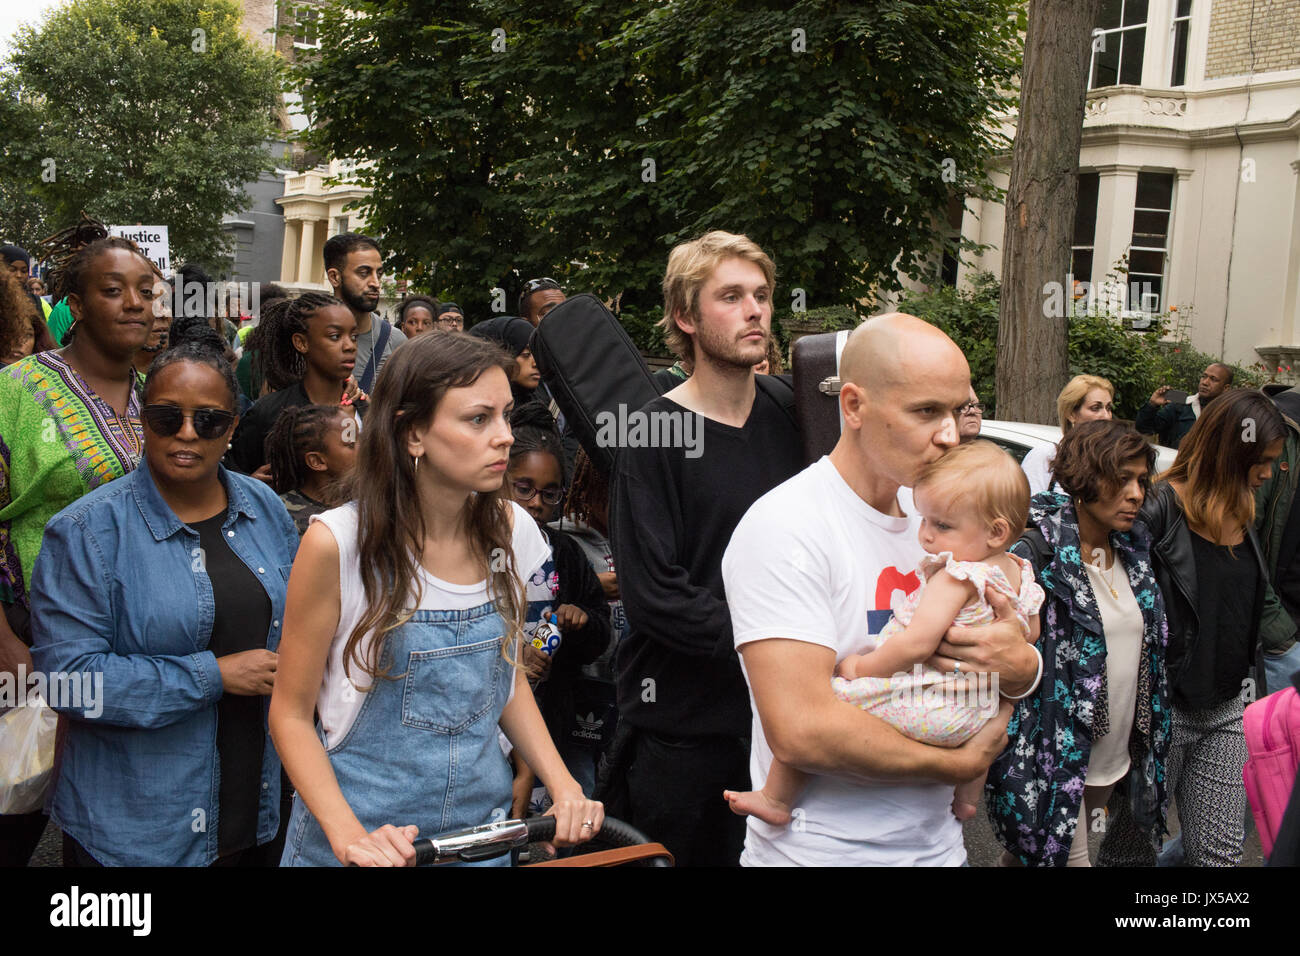 London, UK. 14th August, 2017. Hundreds of people take part in a silent march to demand justice for the victims of the grenfell tragedy that took place in Kensington two months ago. North Kensigton, London, UK 14th August 2017 Credit: Lewis Inman/Alamy Live News - Stock Image